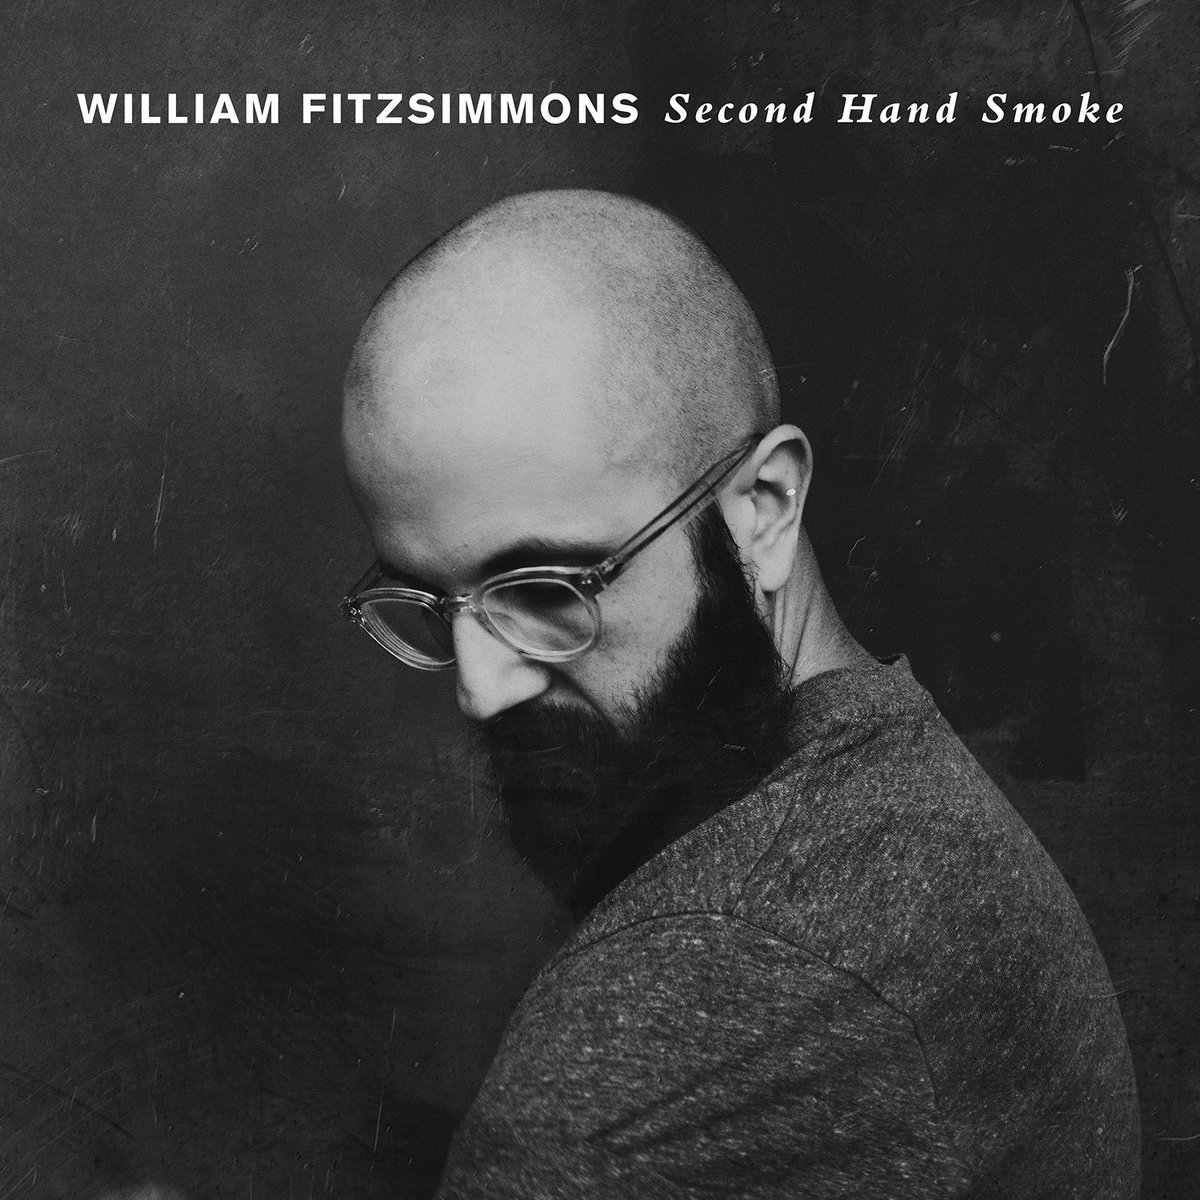 William Fitzsimmons on Twitter: